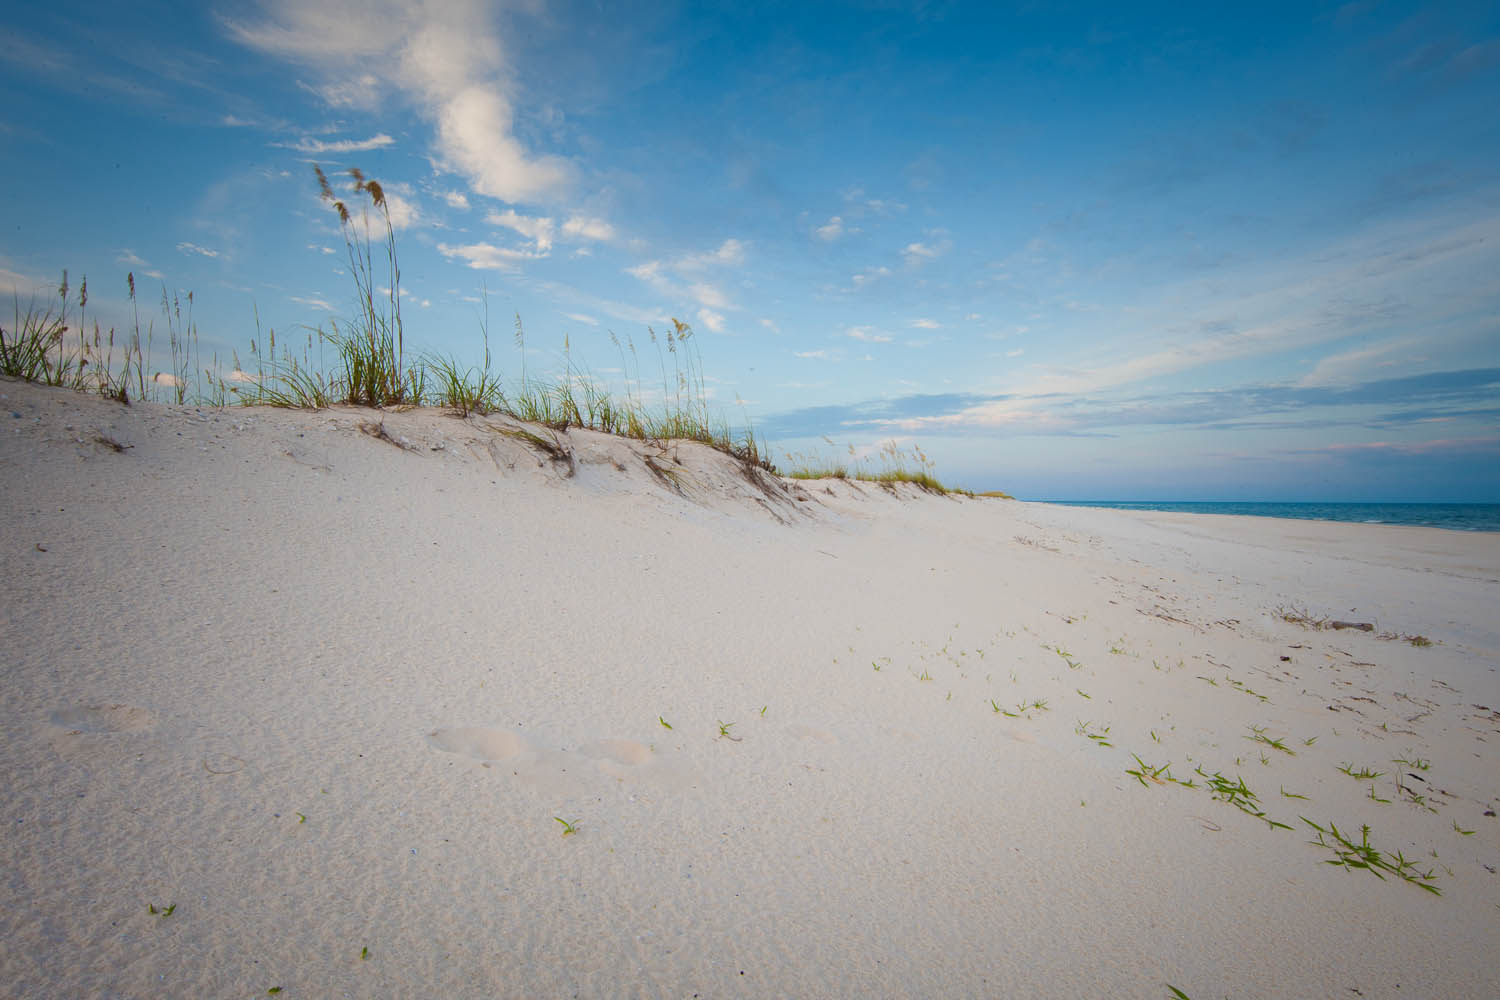 Dunes on a beach at Gulf State Park in Alabama. Image: Outdoor Alabama/Billy Pope